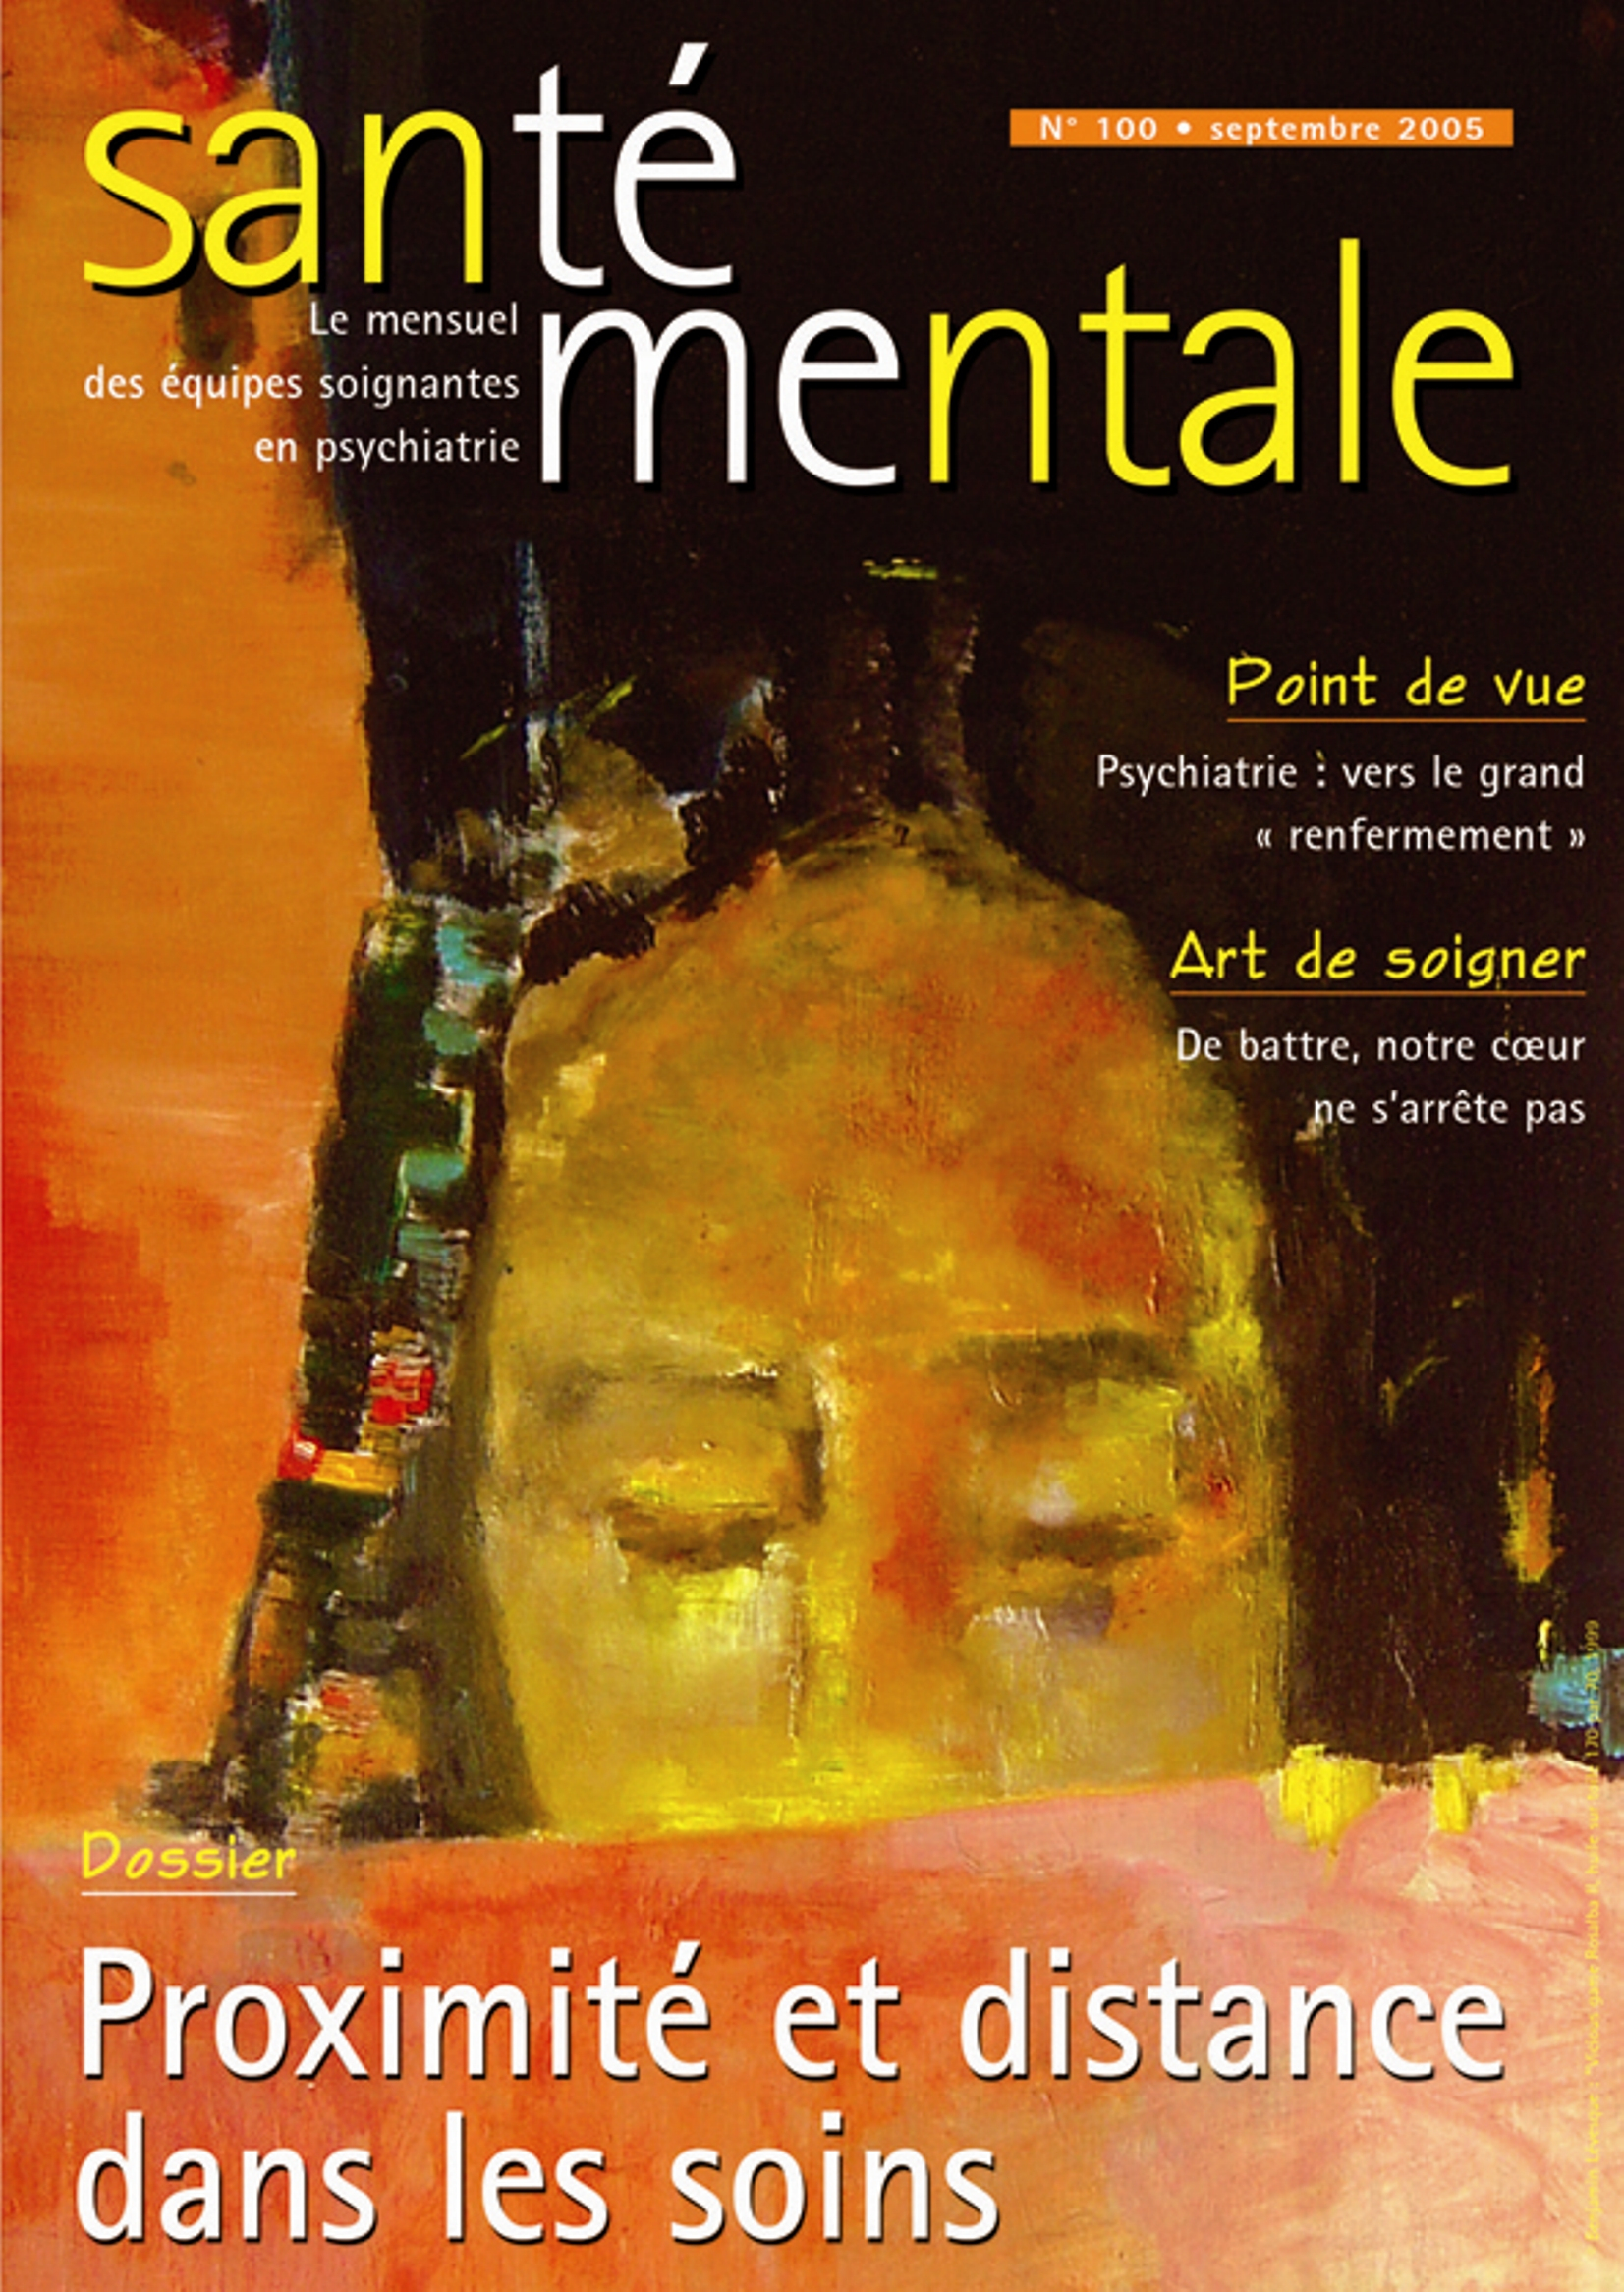 Couverture N°100 septembre 2005